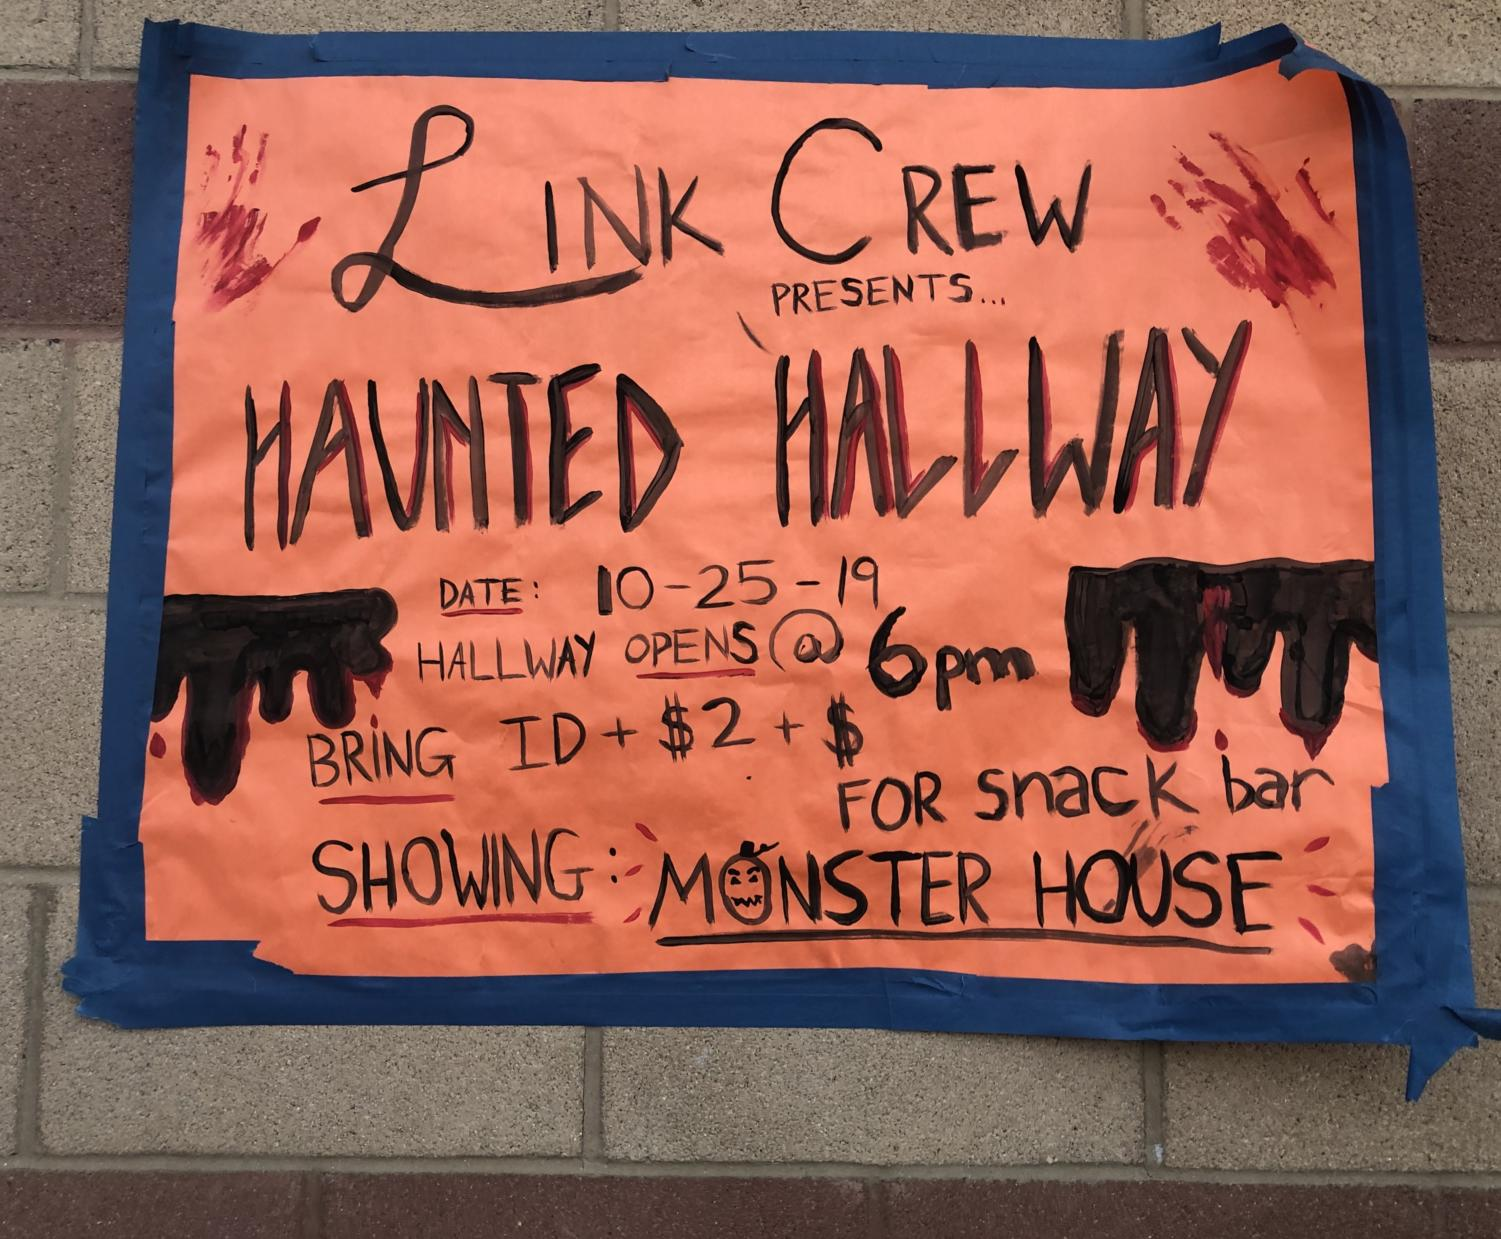 The Haunted Hallway with a movie and a snack bar.